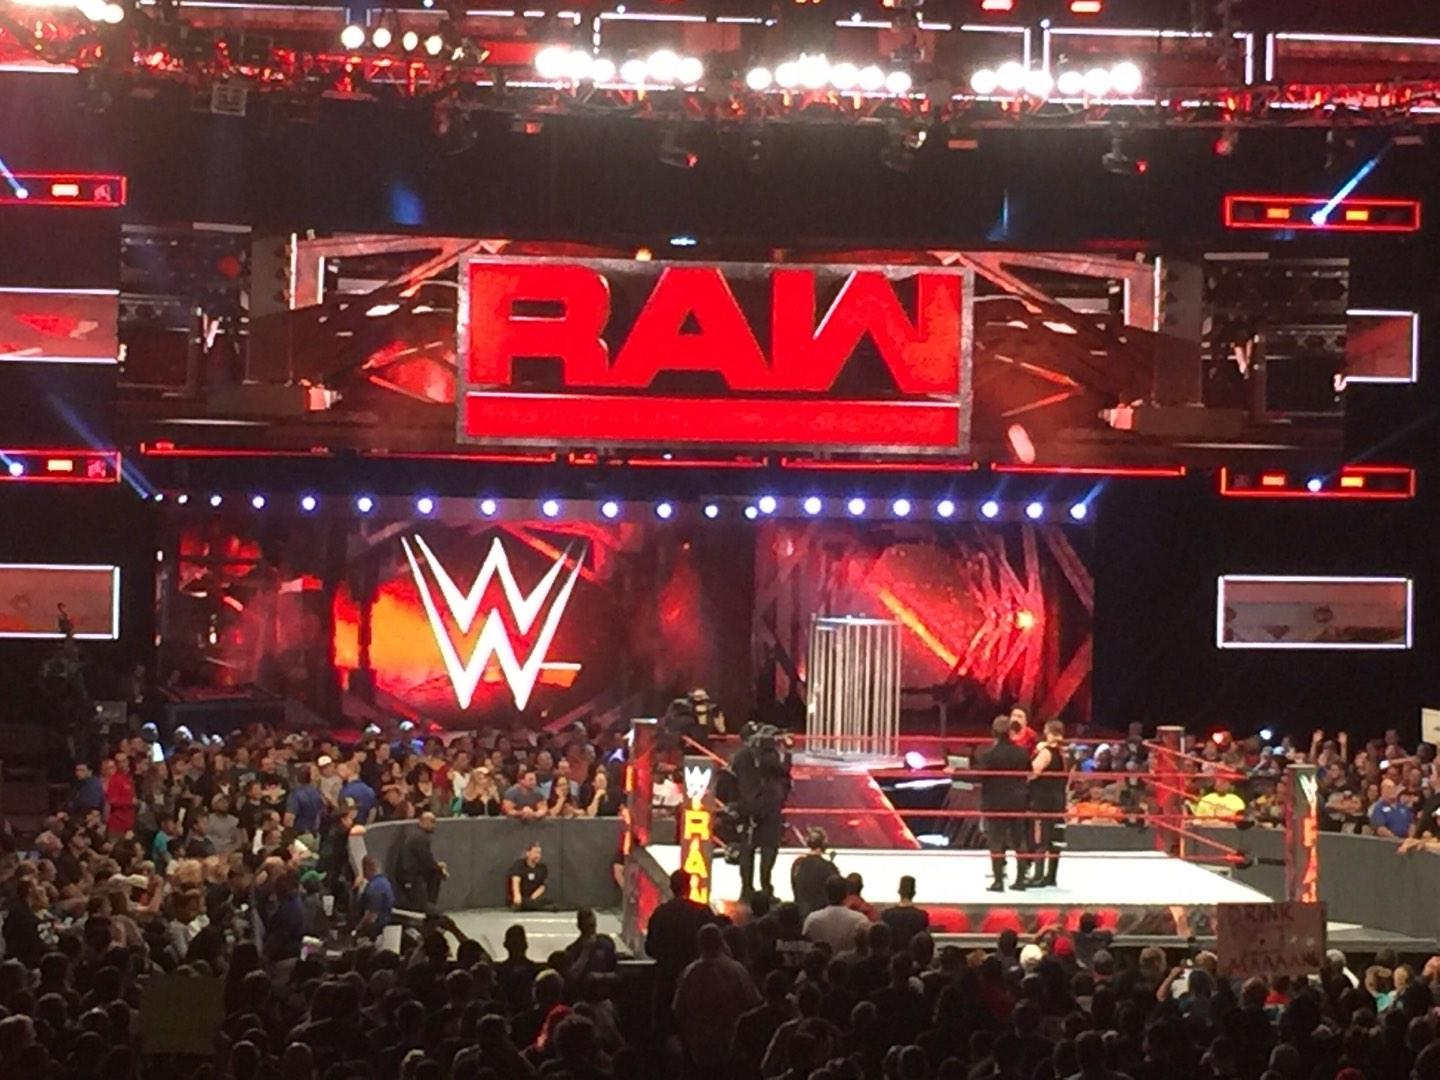 Amalie Arena Section 109 Row S Seat 13 Monday Night Raw